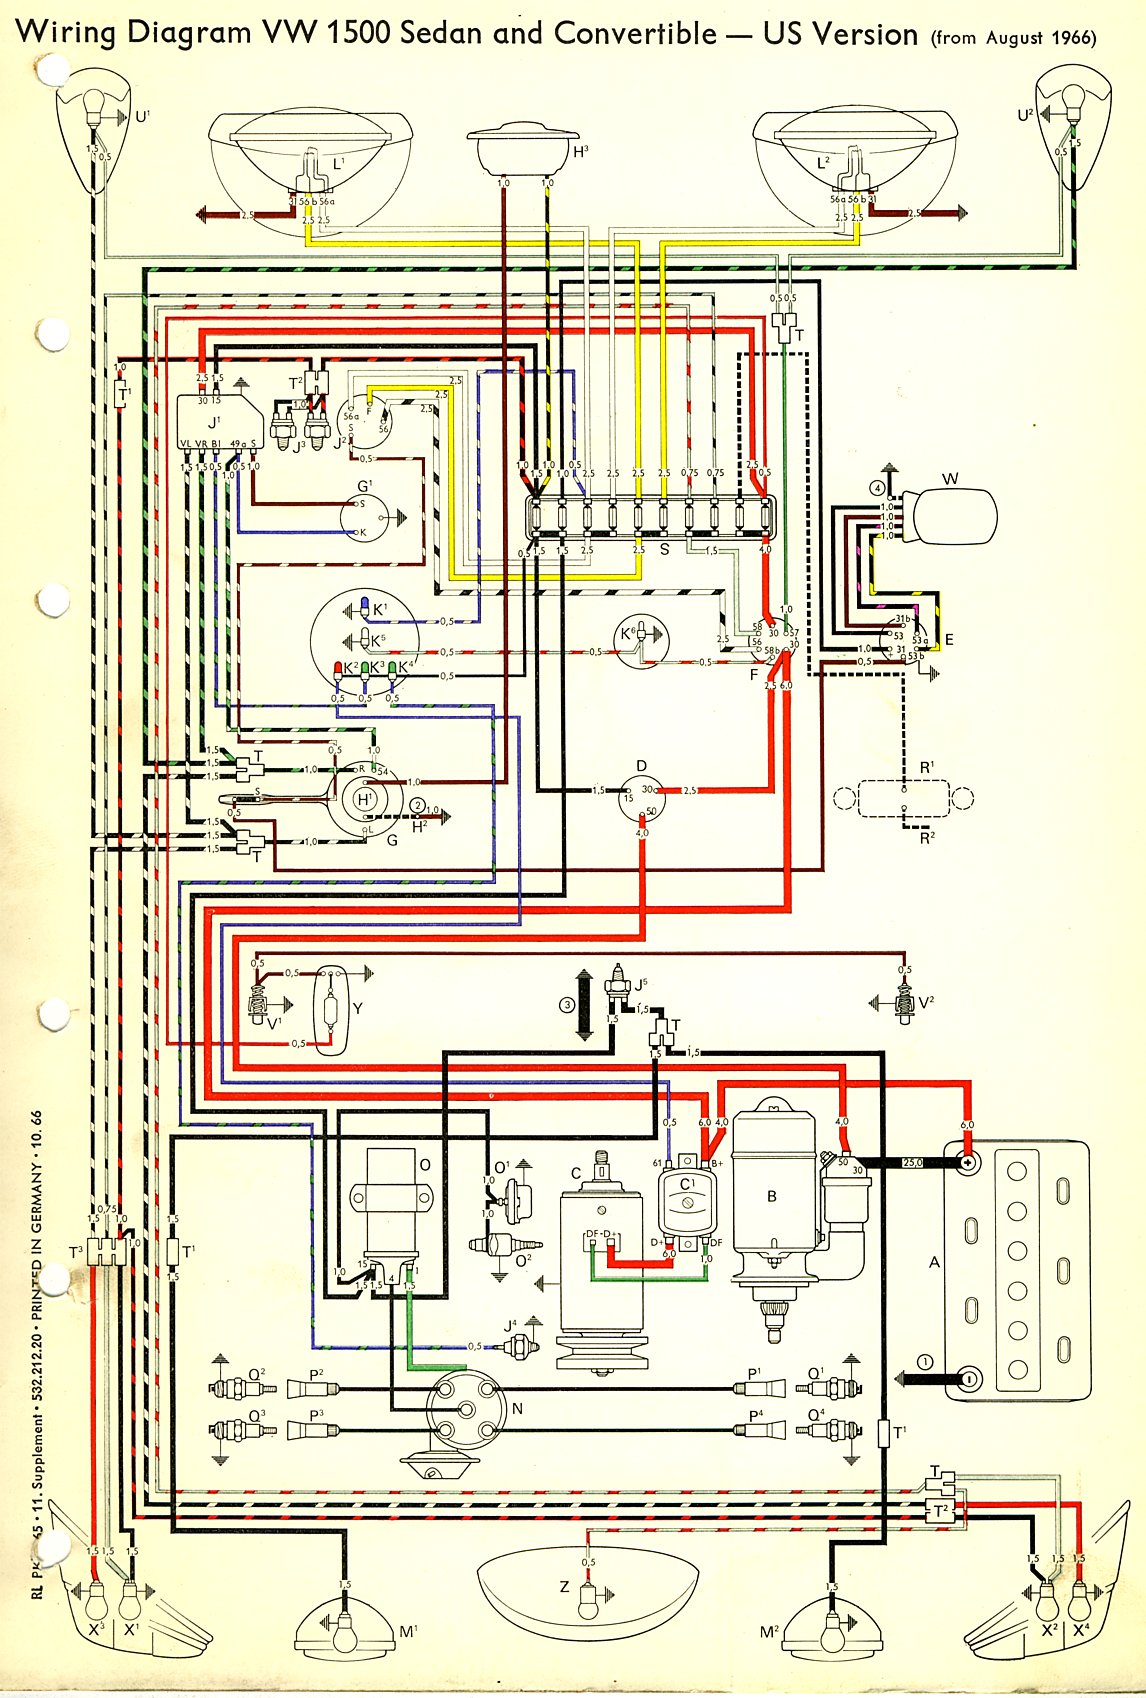 bug_67_USA thesamba com type 1 wiring diagrams wiring schematics at honlapkeszites.co